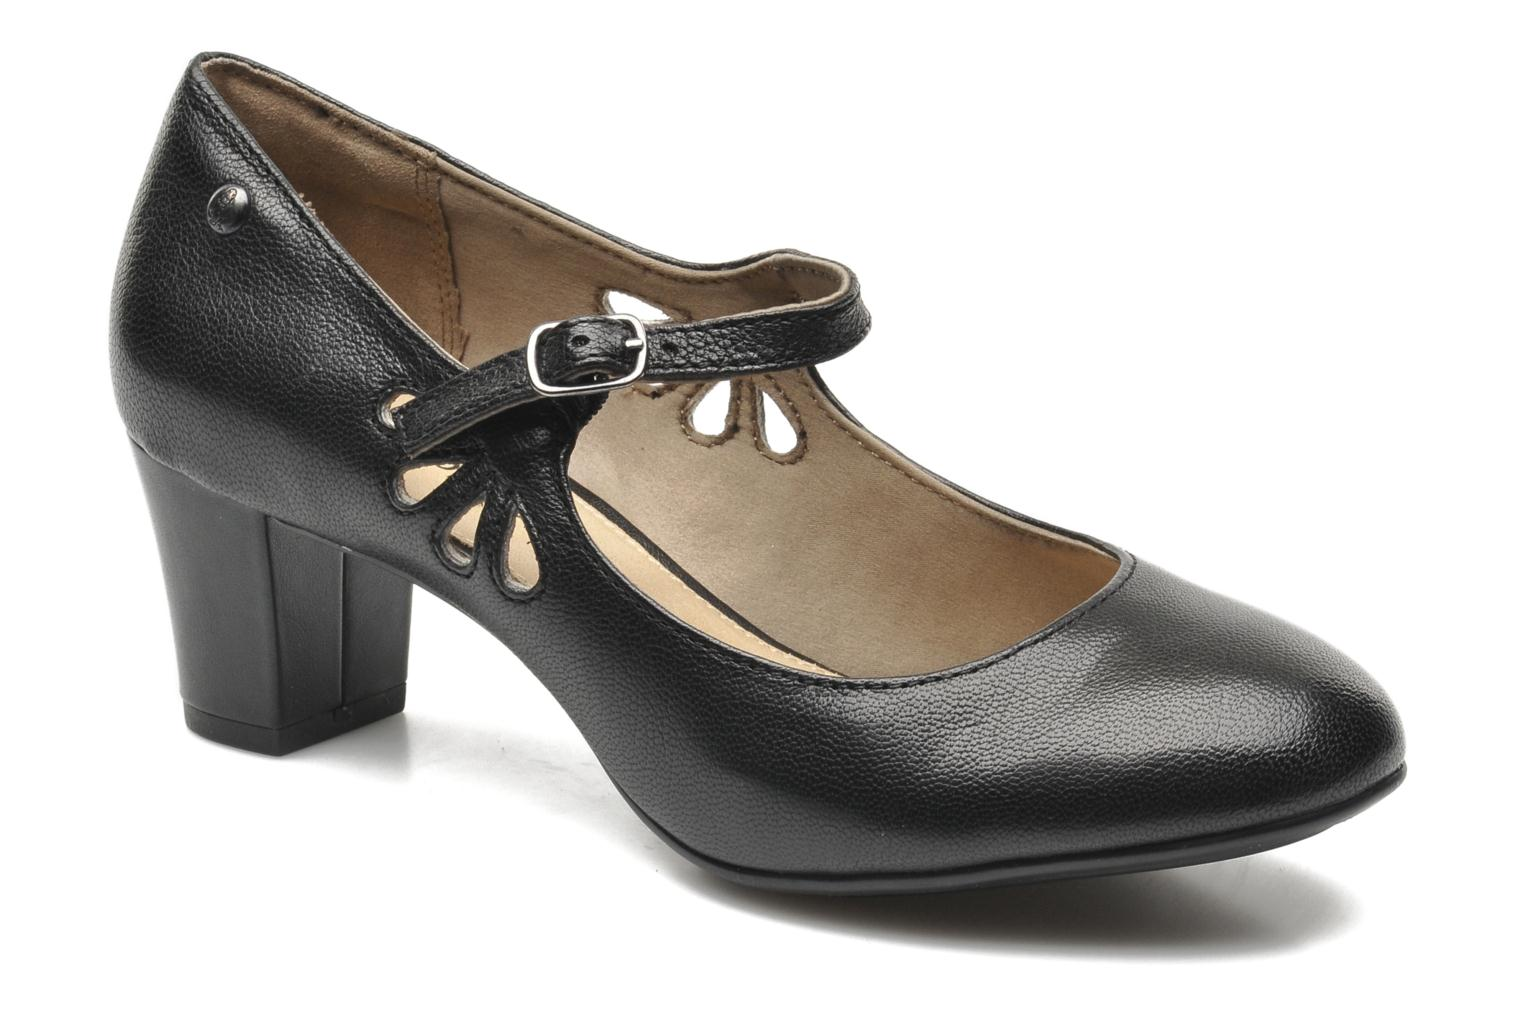 Pumps Imagery Mary Jane by Hush Puppies